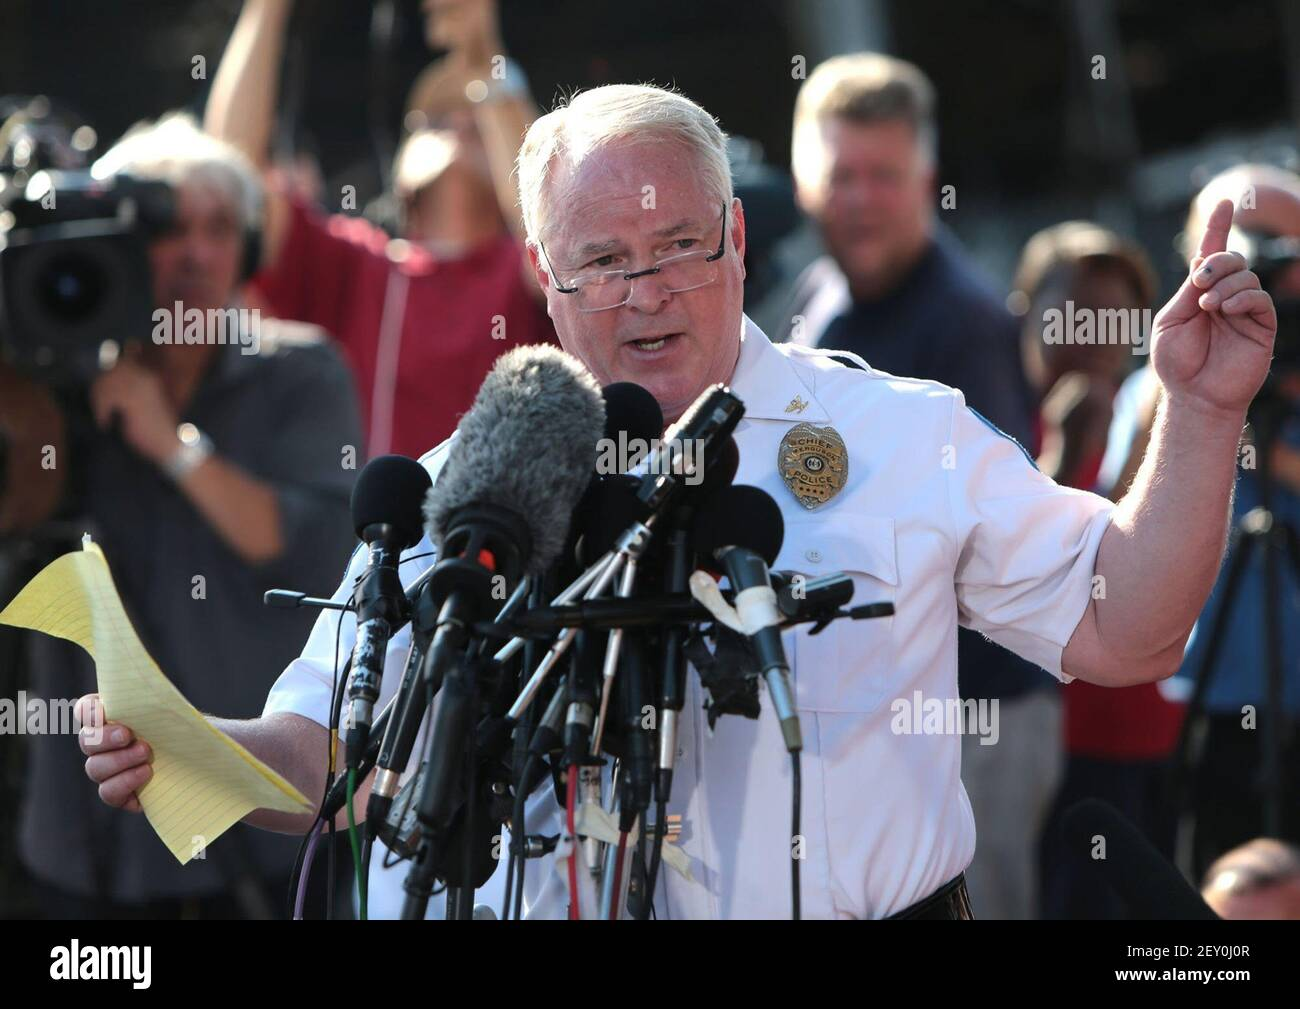 Ferguson Police Chief Thomas Jackson Ferguson police ID officer Darren Wilson as shooter of Michael Brown to a crowd of reporters and citizens on Friday, Aug. 15, 2014, at the burned QuickTrip located on W. Florissant in Ferguson, Mo. (Laurie Skrivan/St. Louis Post-Dispatch/MCT/Sipa USA) Stock Photo